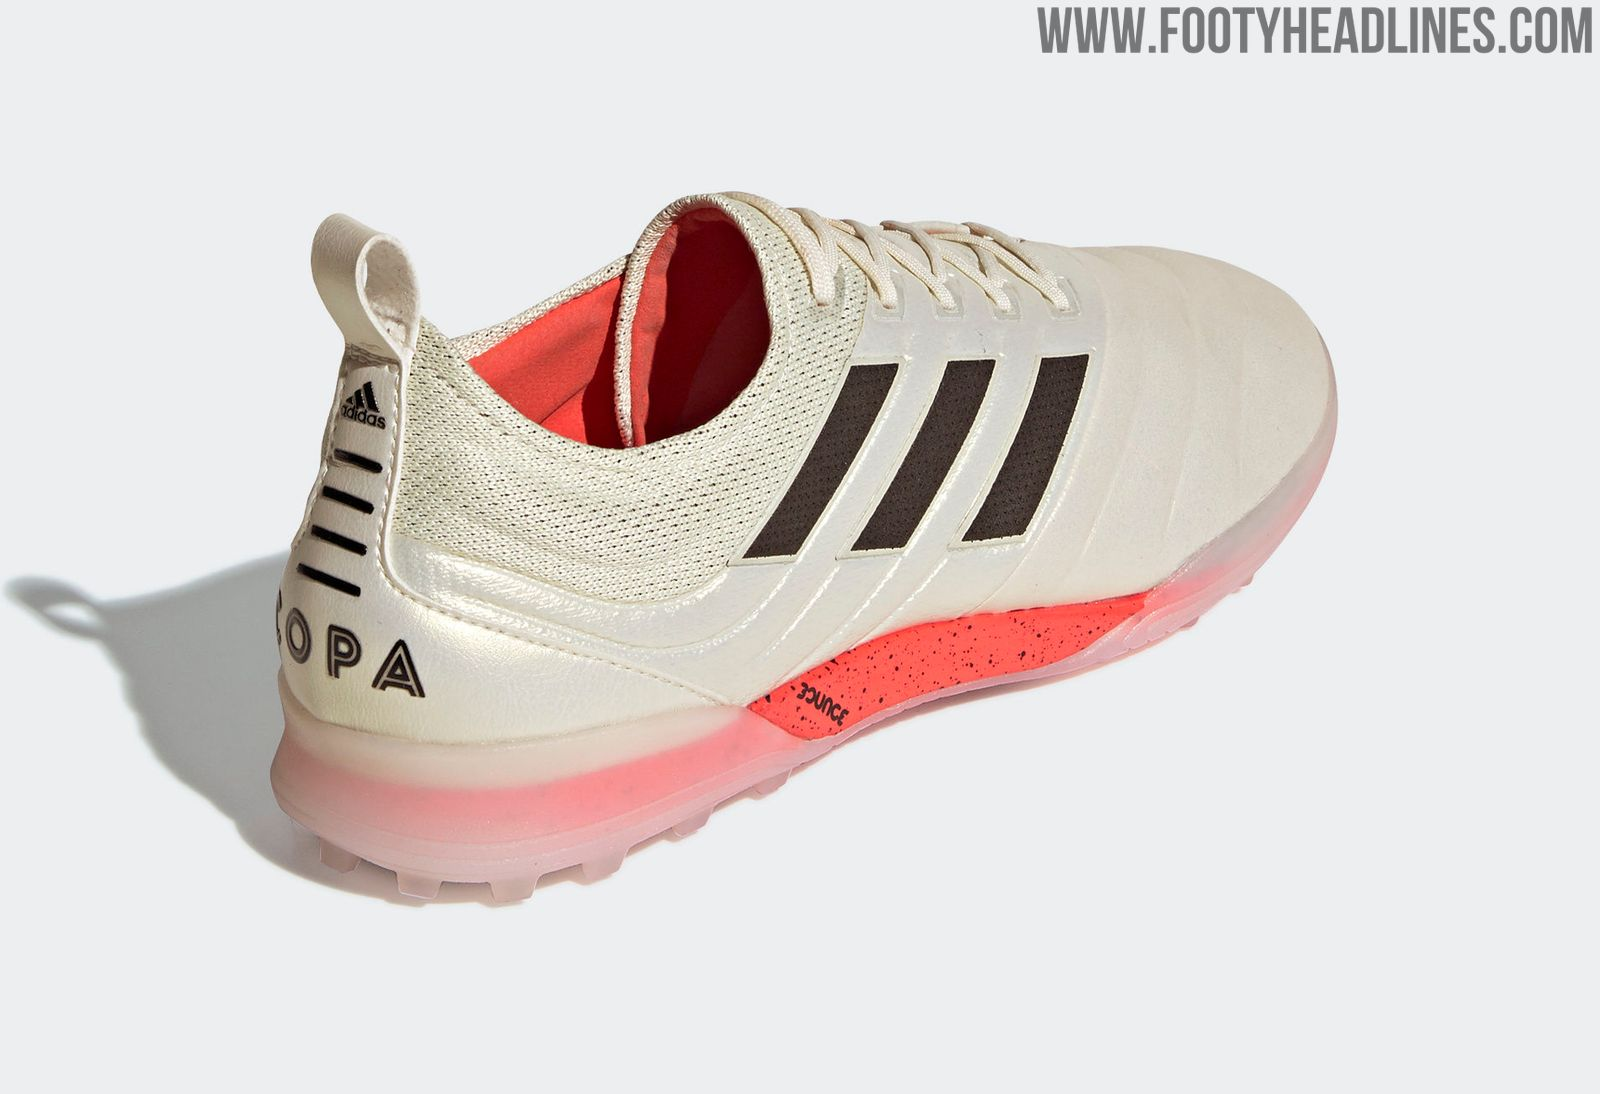 e2f7d403033856 Let s hear your thoughts on the Adidas Copa Tango 19.1 in the comments  below! ShareTweet · adidas Boots Copa Indoor Turf